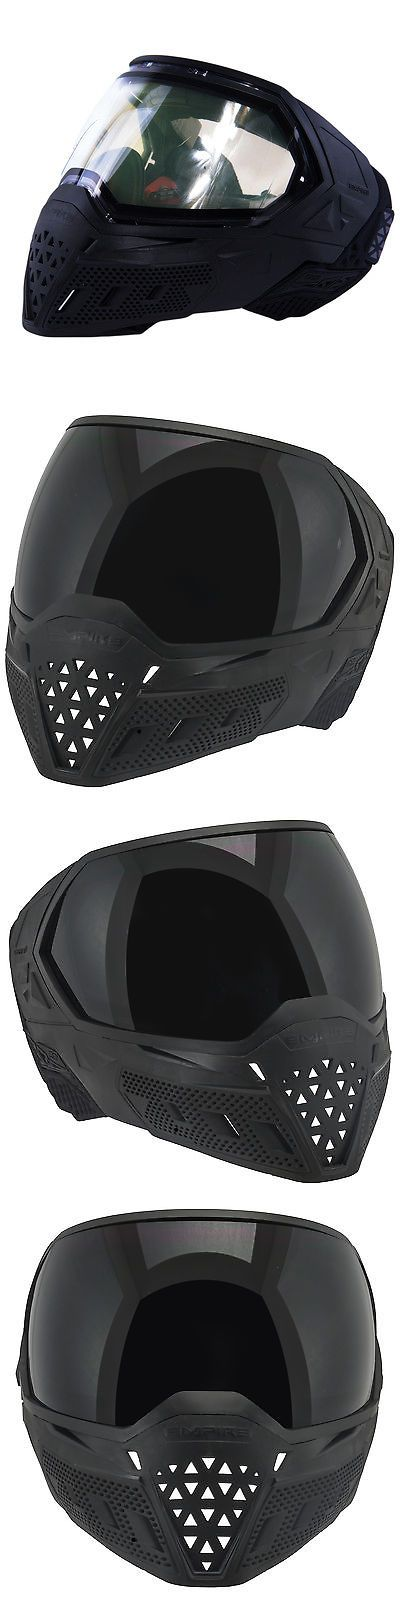 Goggles and Masks 16050: Empire Evs Thermal Paintball Goggles - Black Black -> BUY IT NOW ONLY: $149.95 on eBay!